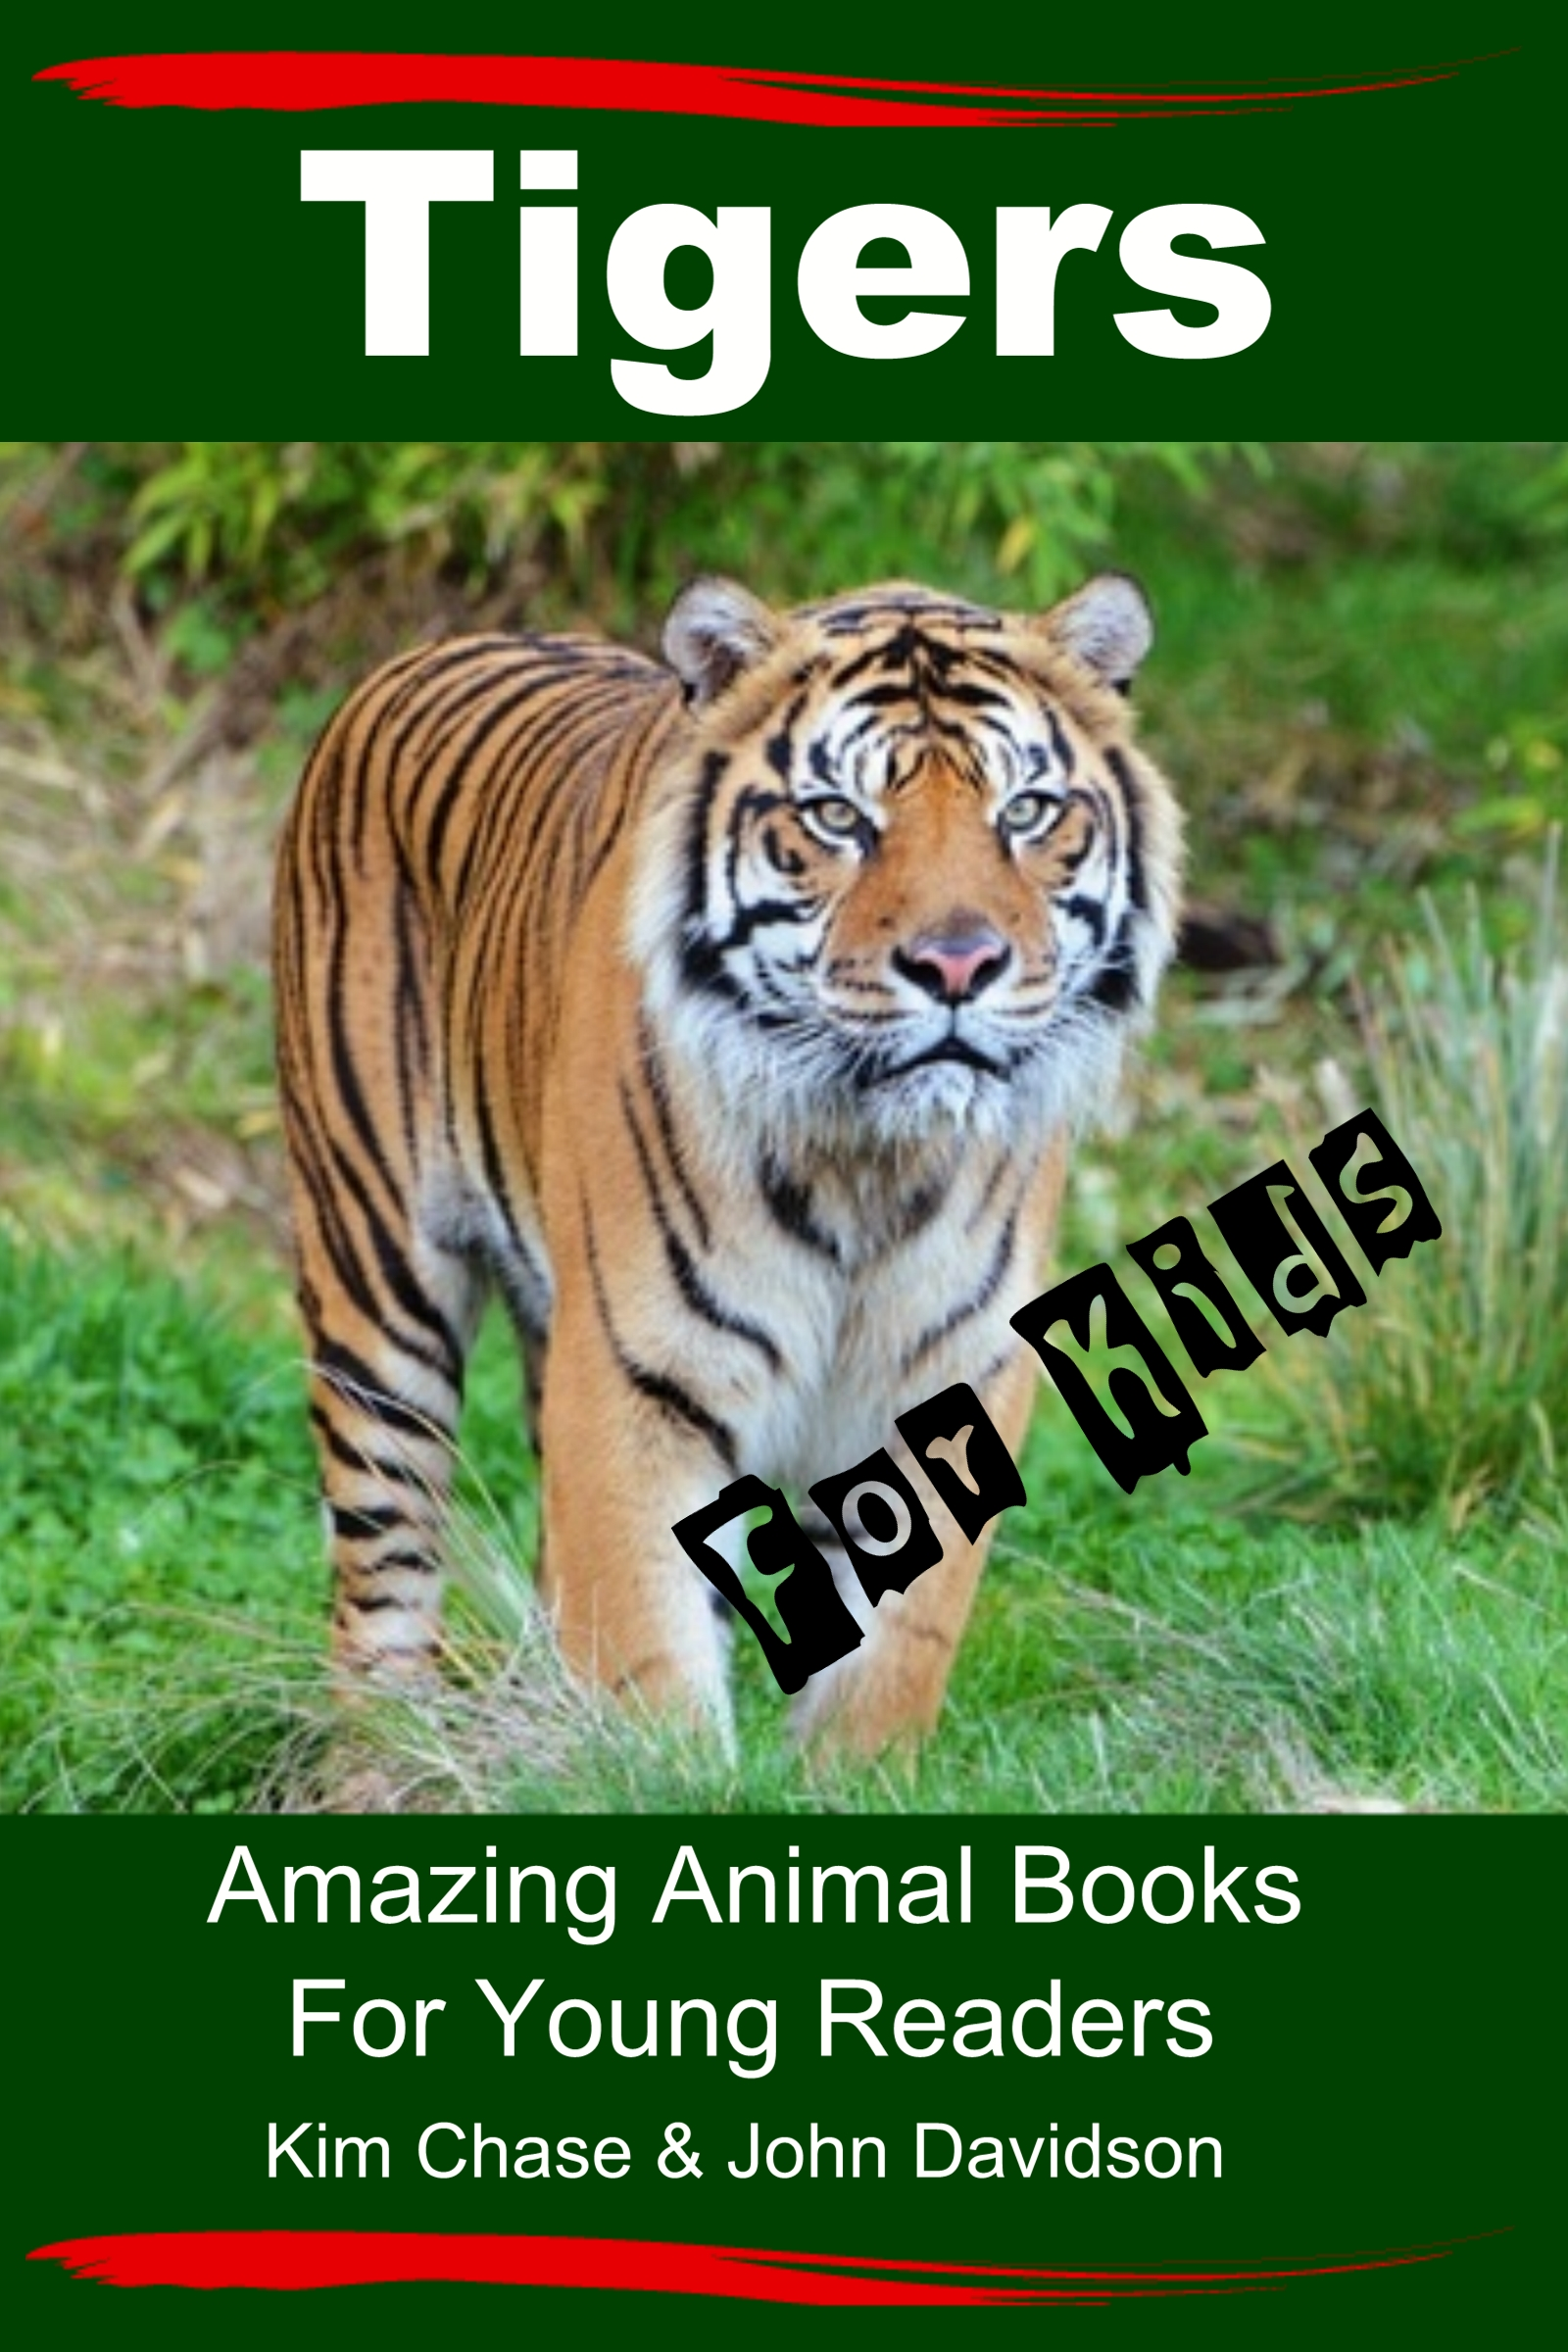 Tigers For Kids – Amazing Animal Books for Young Readers (sst-cccxi)